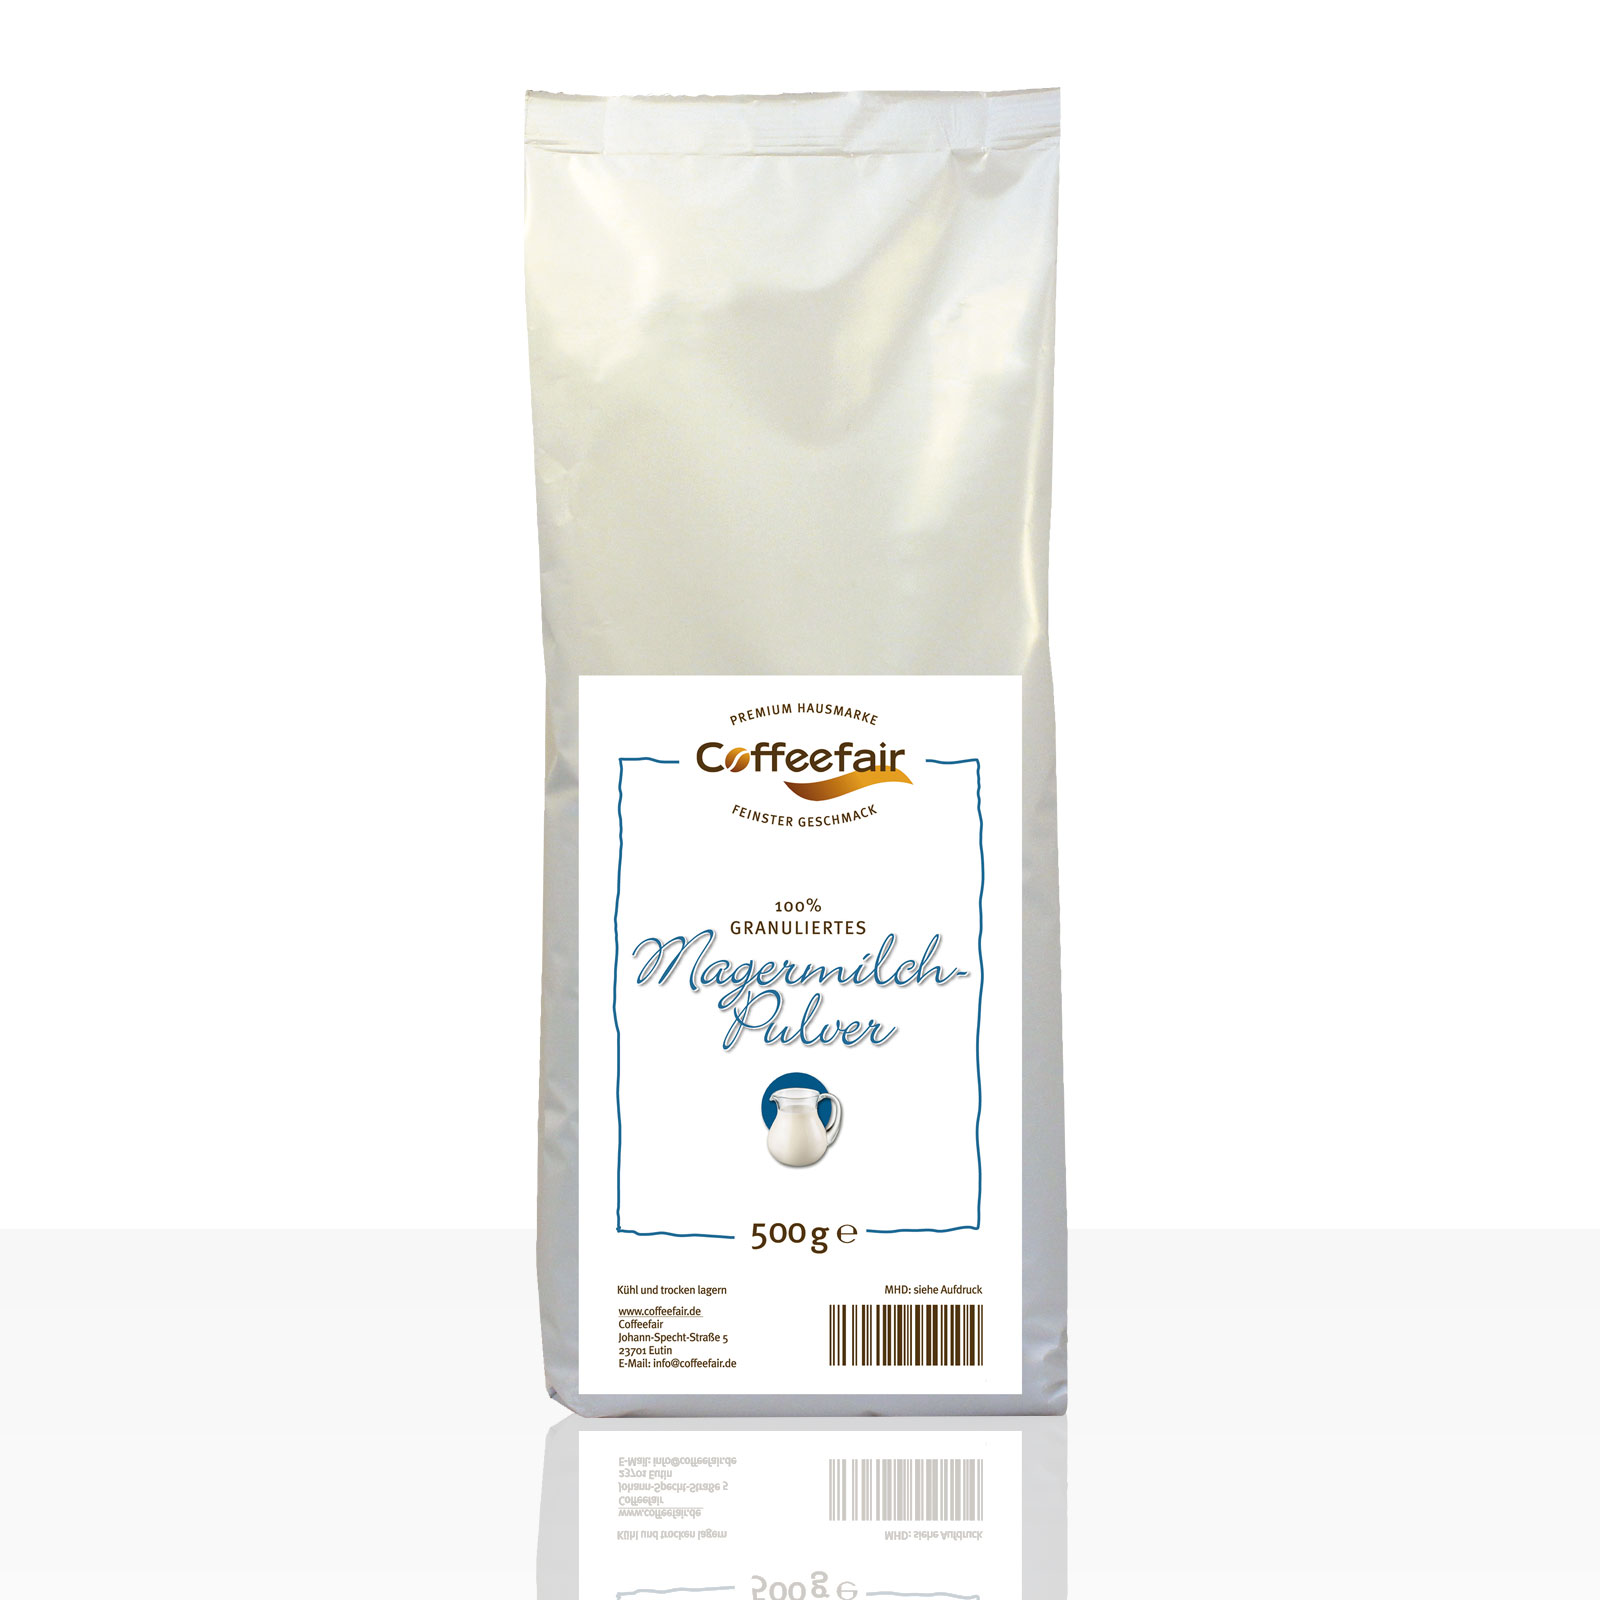 Coffeefair 100% granuliertes Magermilchpulver 10 x 500g Topping Granulat